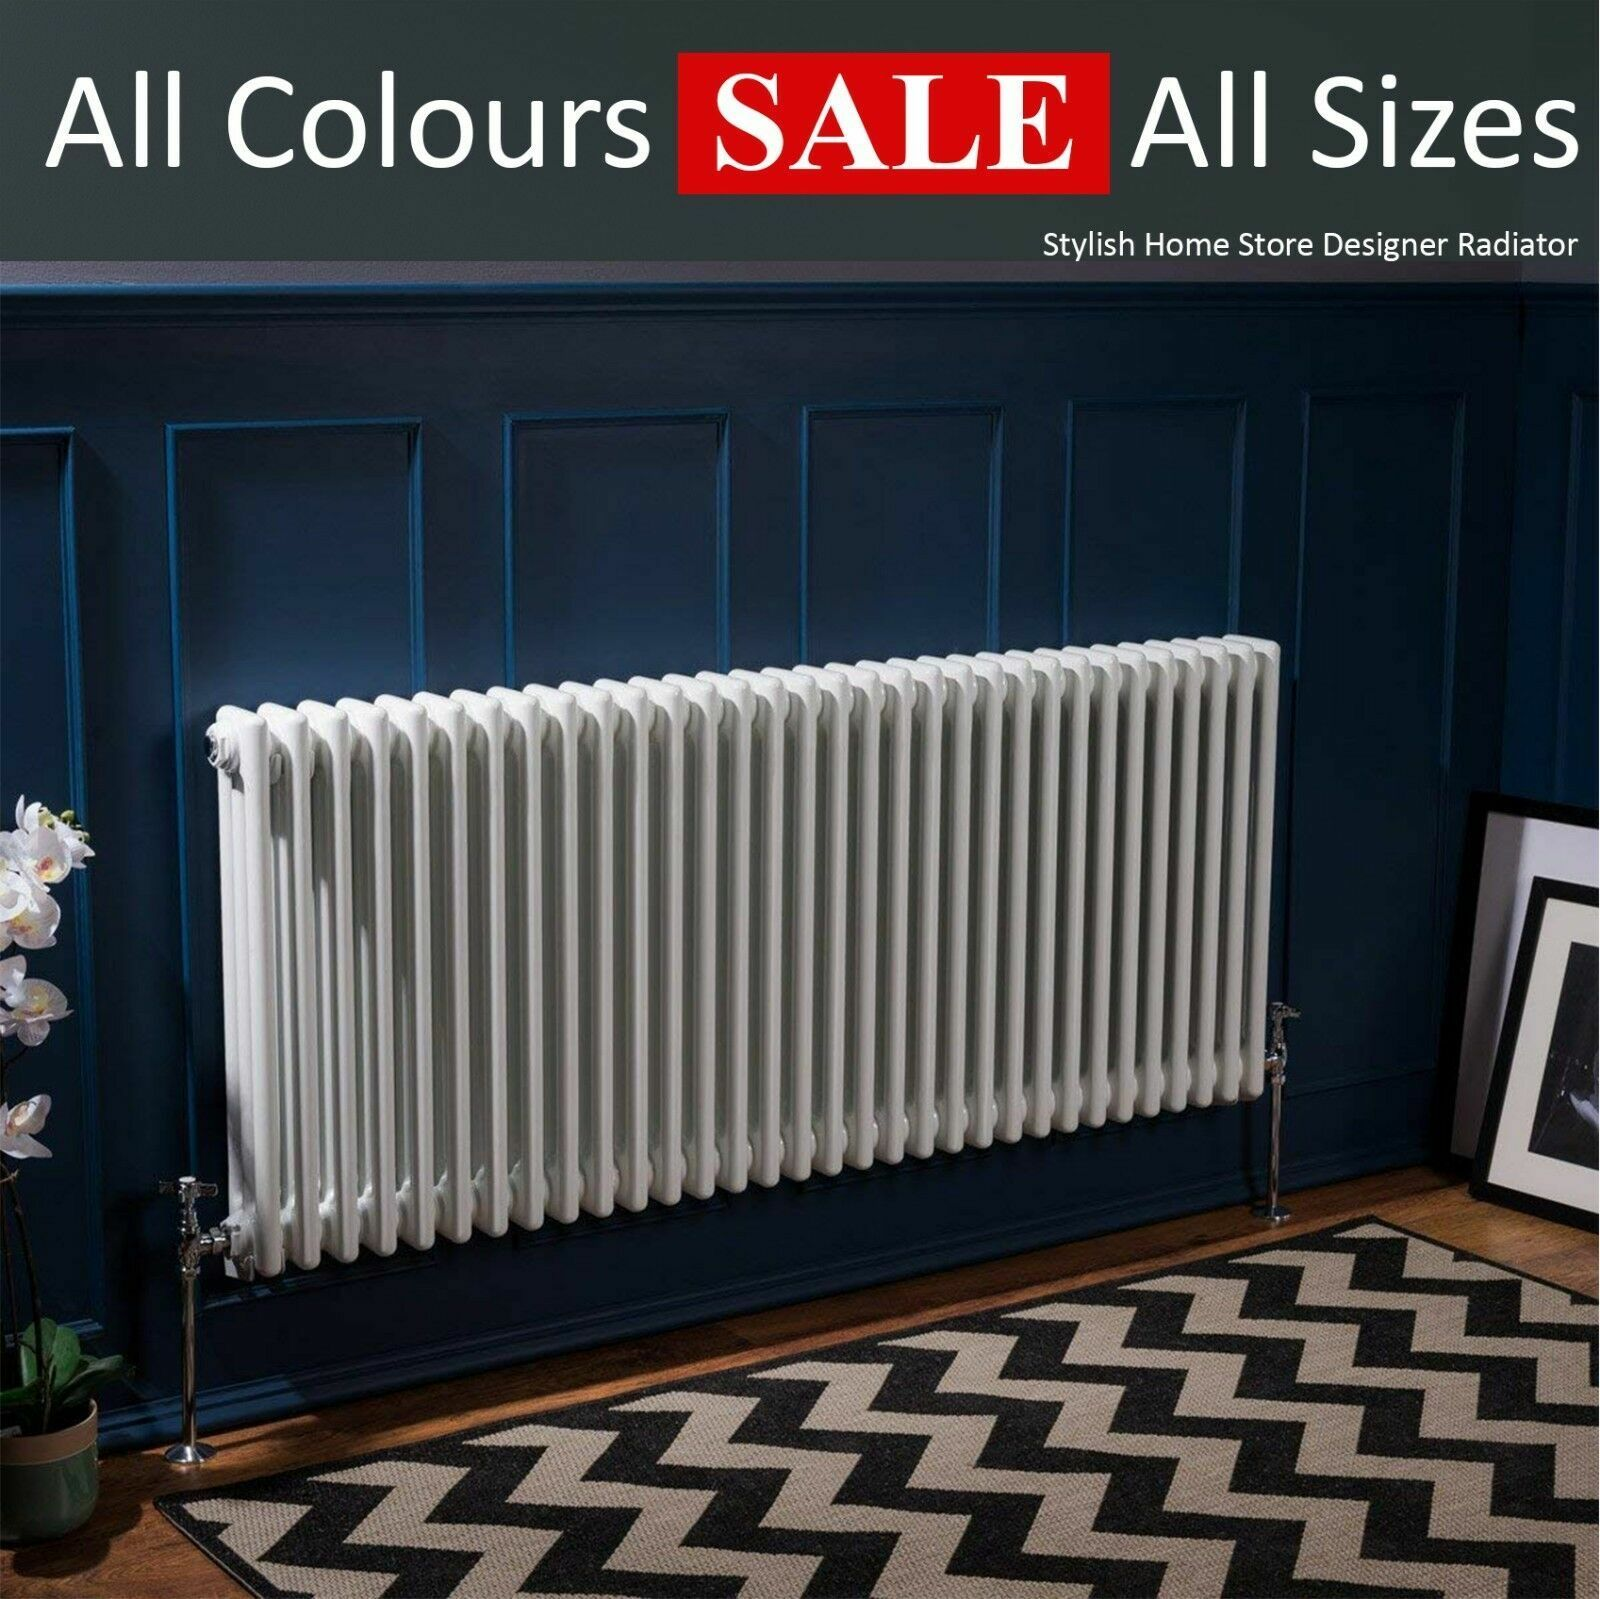 Horizontal Vertical traditionnel Colonne Radiateur Fonte Styl Blanc Anthracite